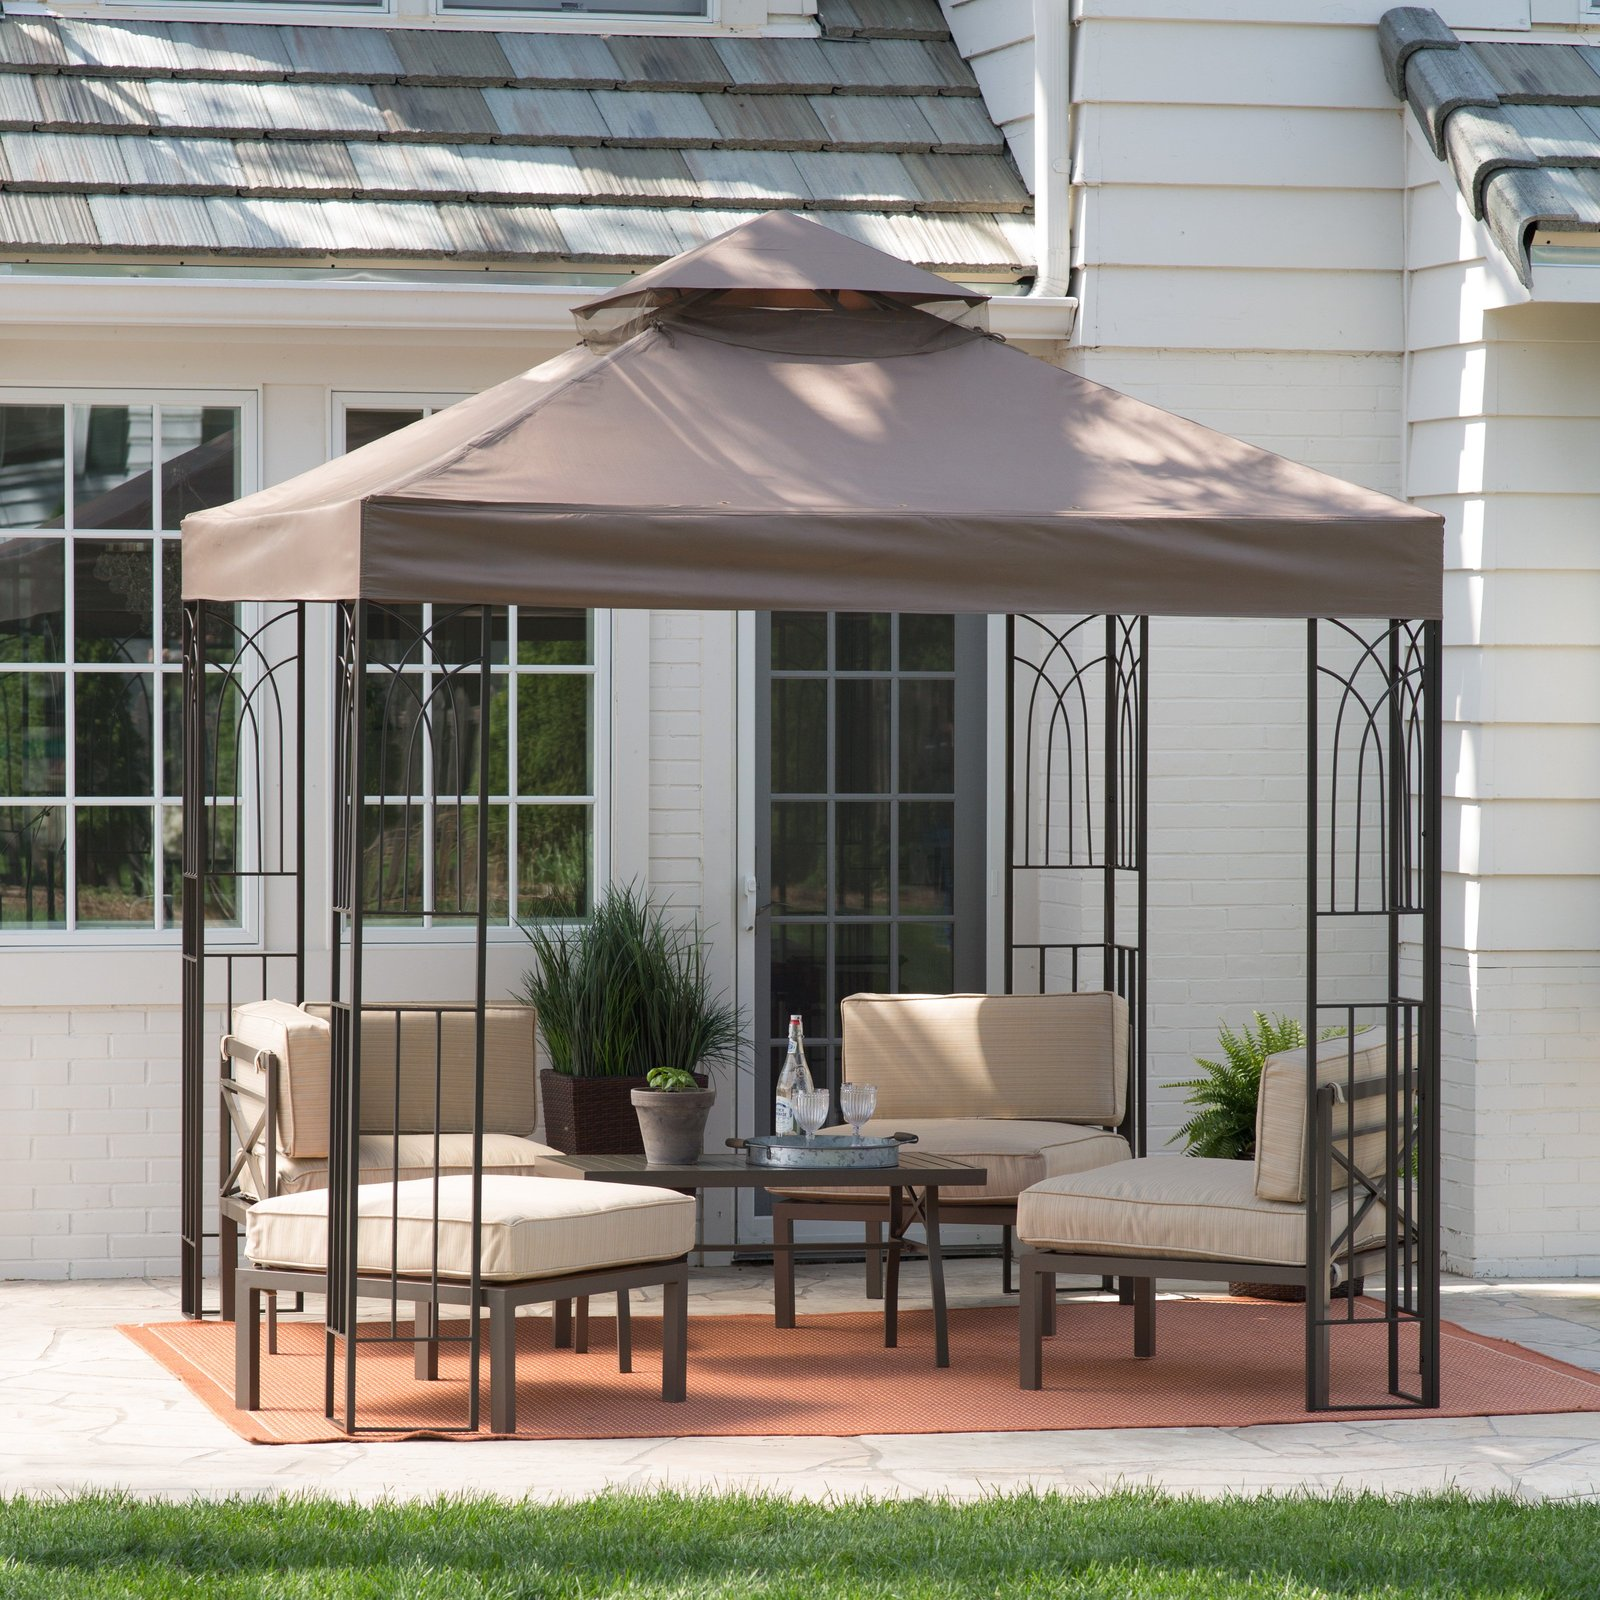 Gazebo canopy patio sun shade outdoor sun shade furniture for Porch canopy plans